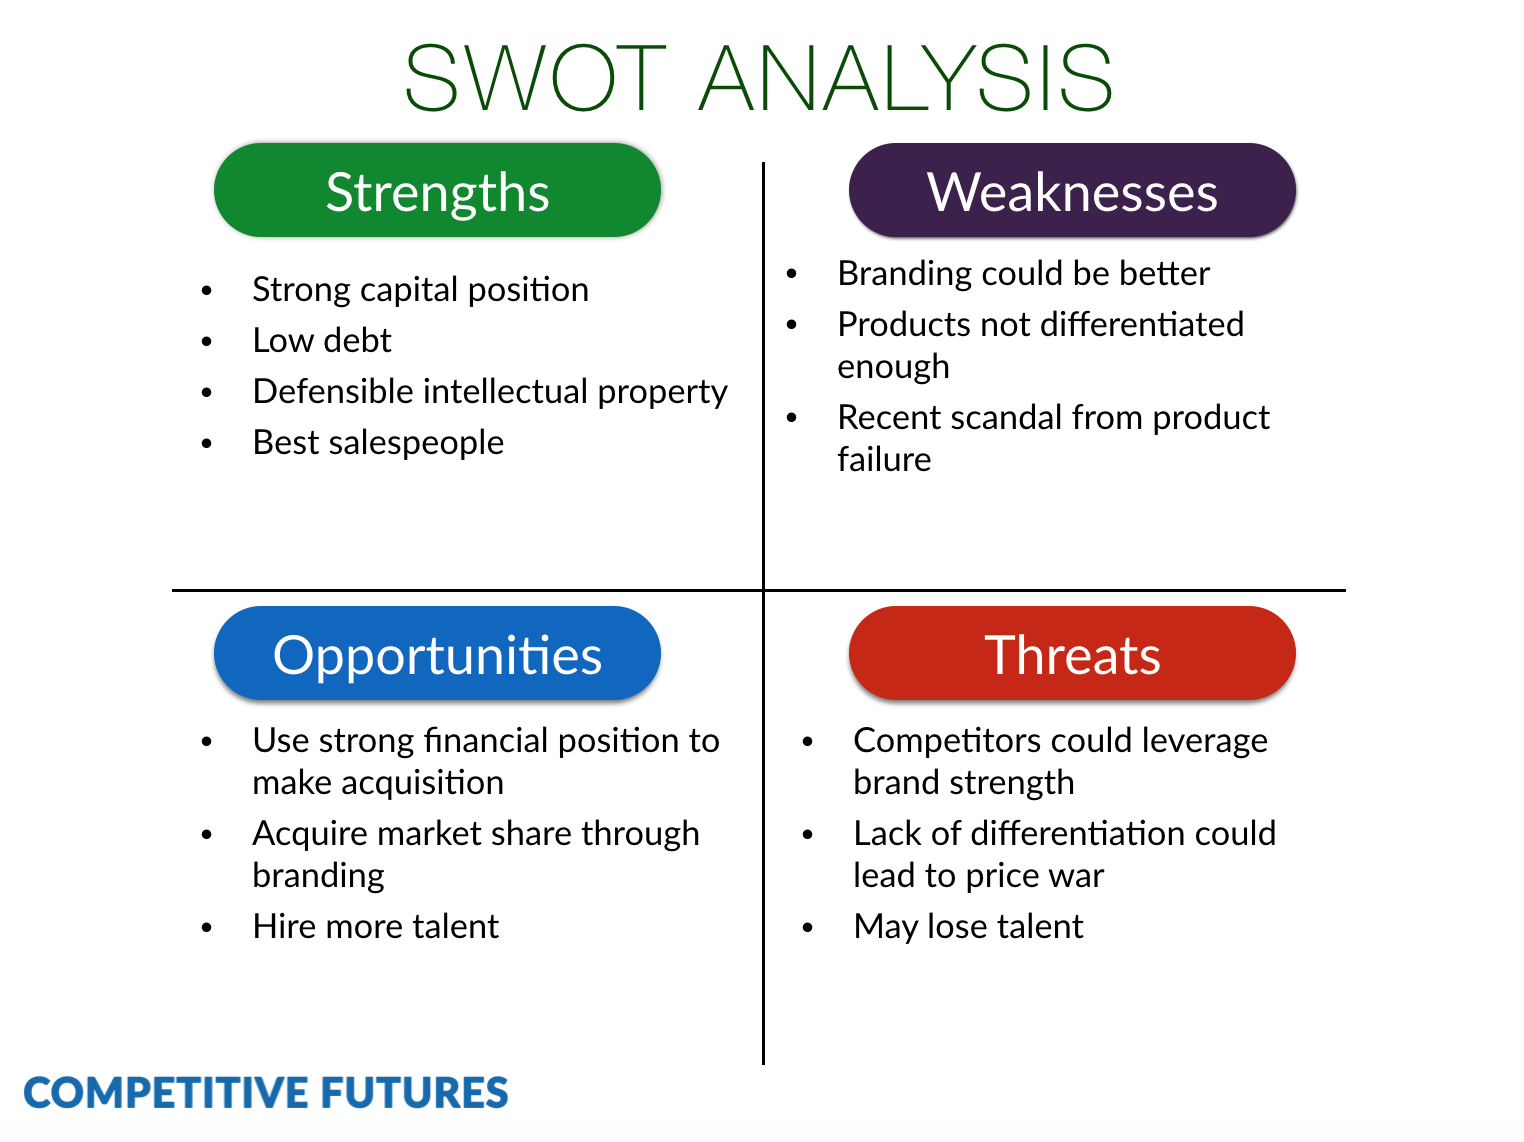 Starbucks SWOT Analysis: Starbucks SWOT Analysis for 2017